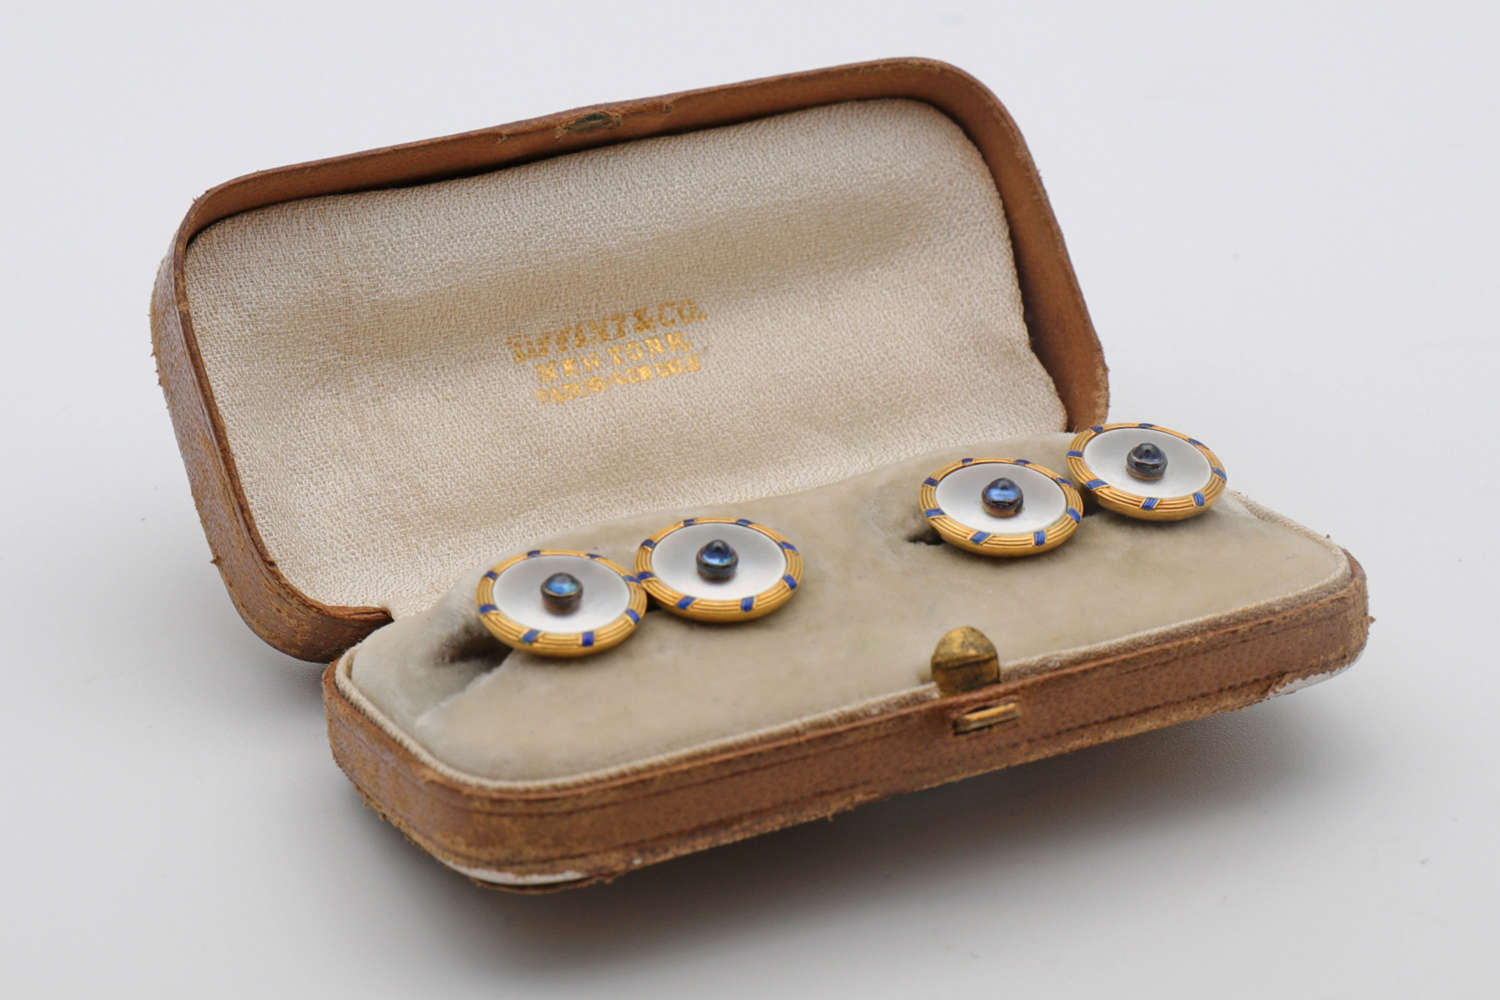 A pair of early 20th century French sapphire, mother of pearl and gold